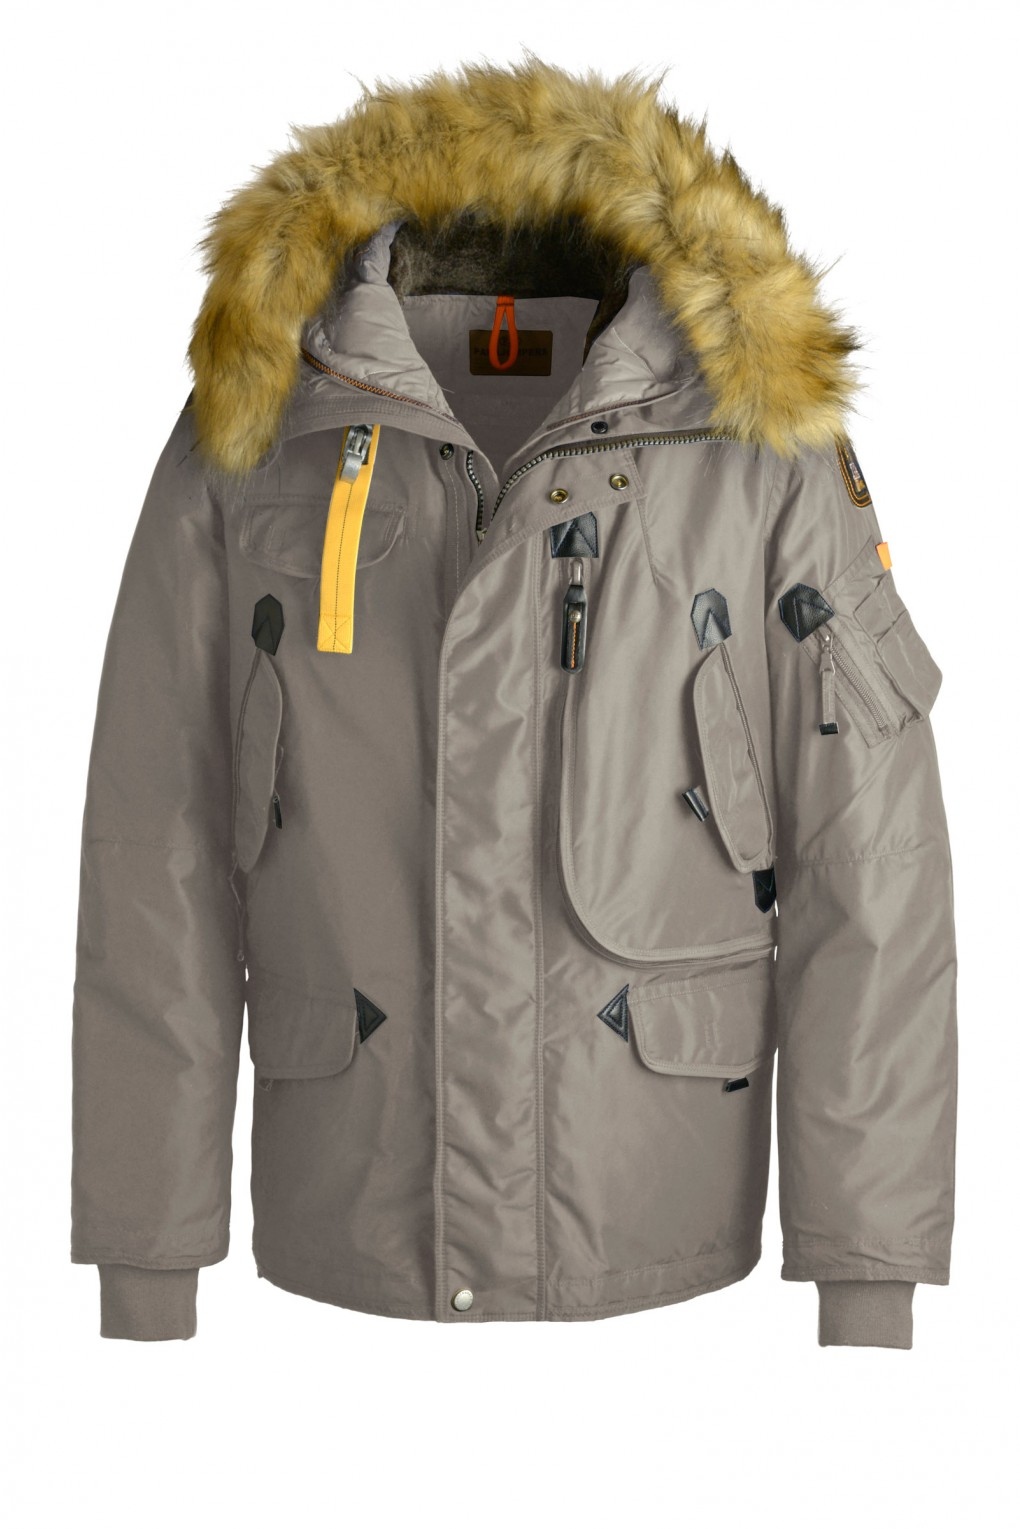 parajumpers RIGHT HAND ECO man outerwear Cappuccino